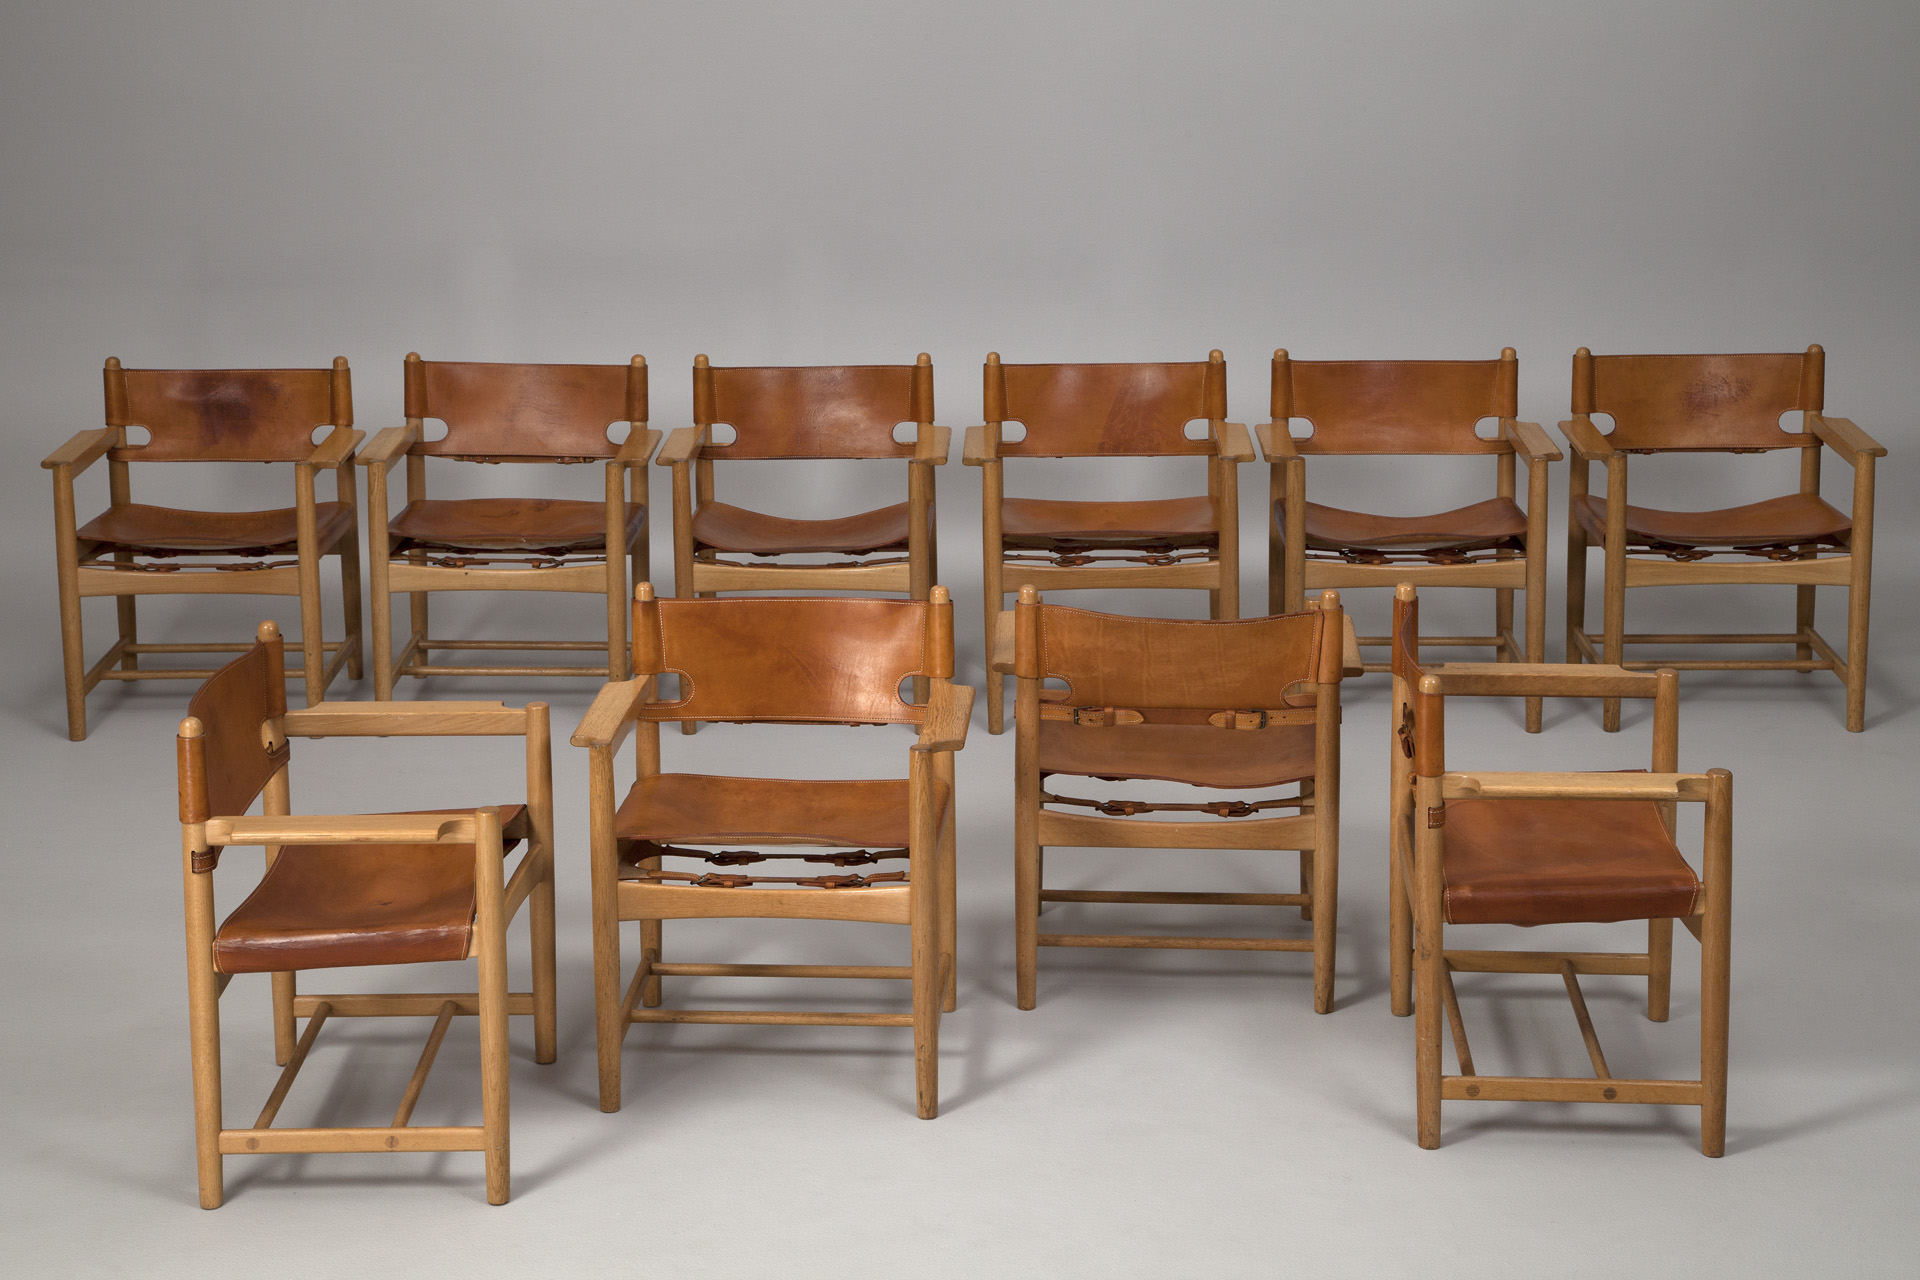 Superieur Hunting Chairs Hunting Chairs Ideas Furniture Decor 29